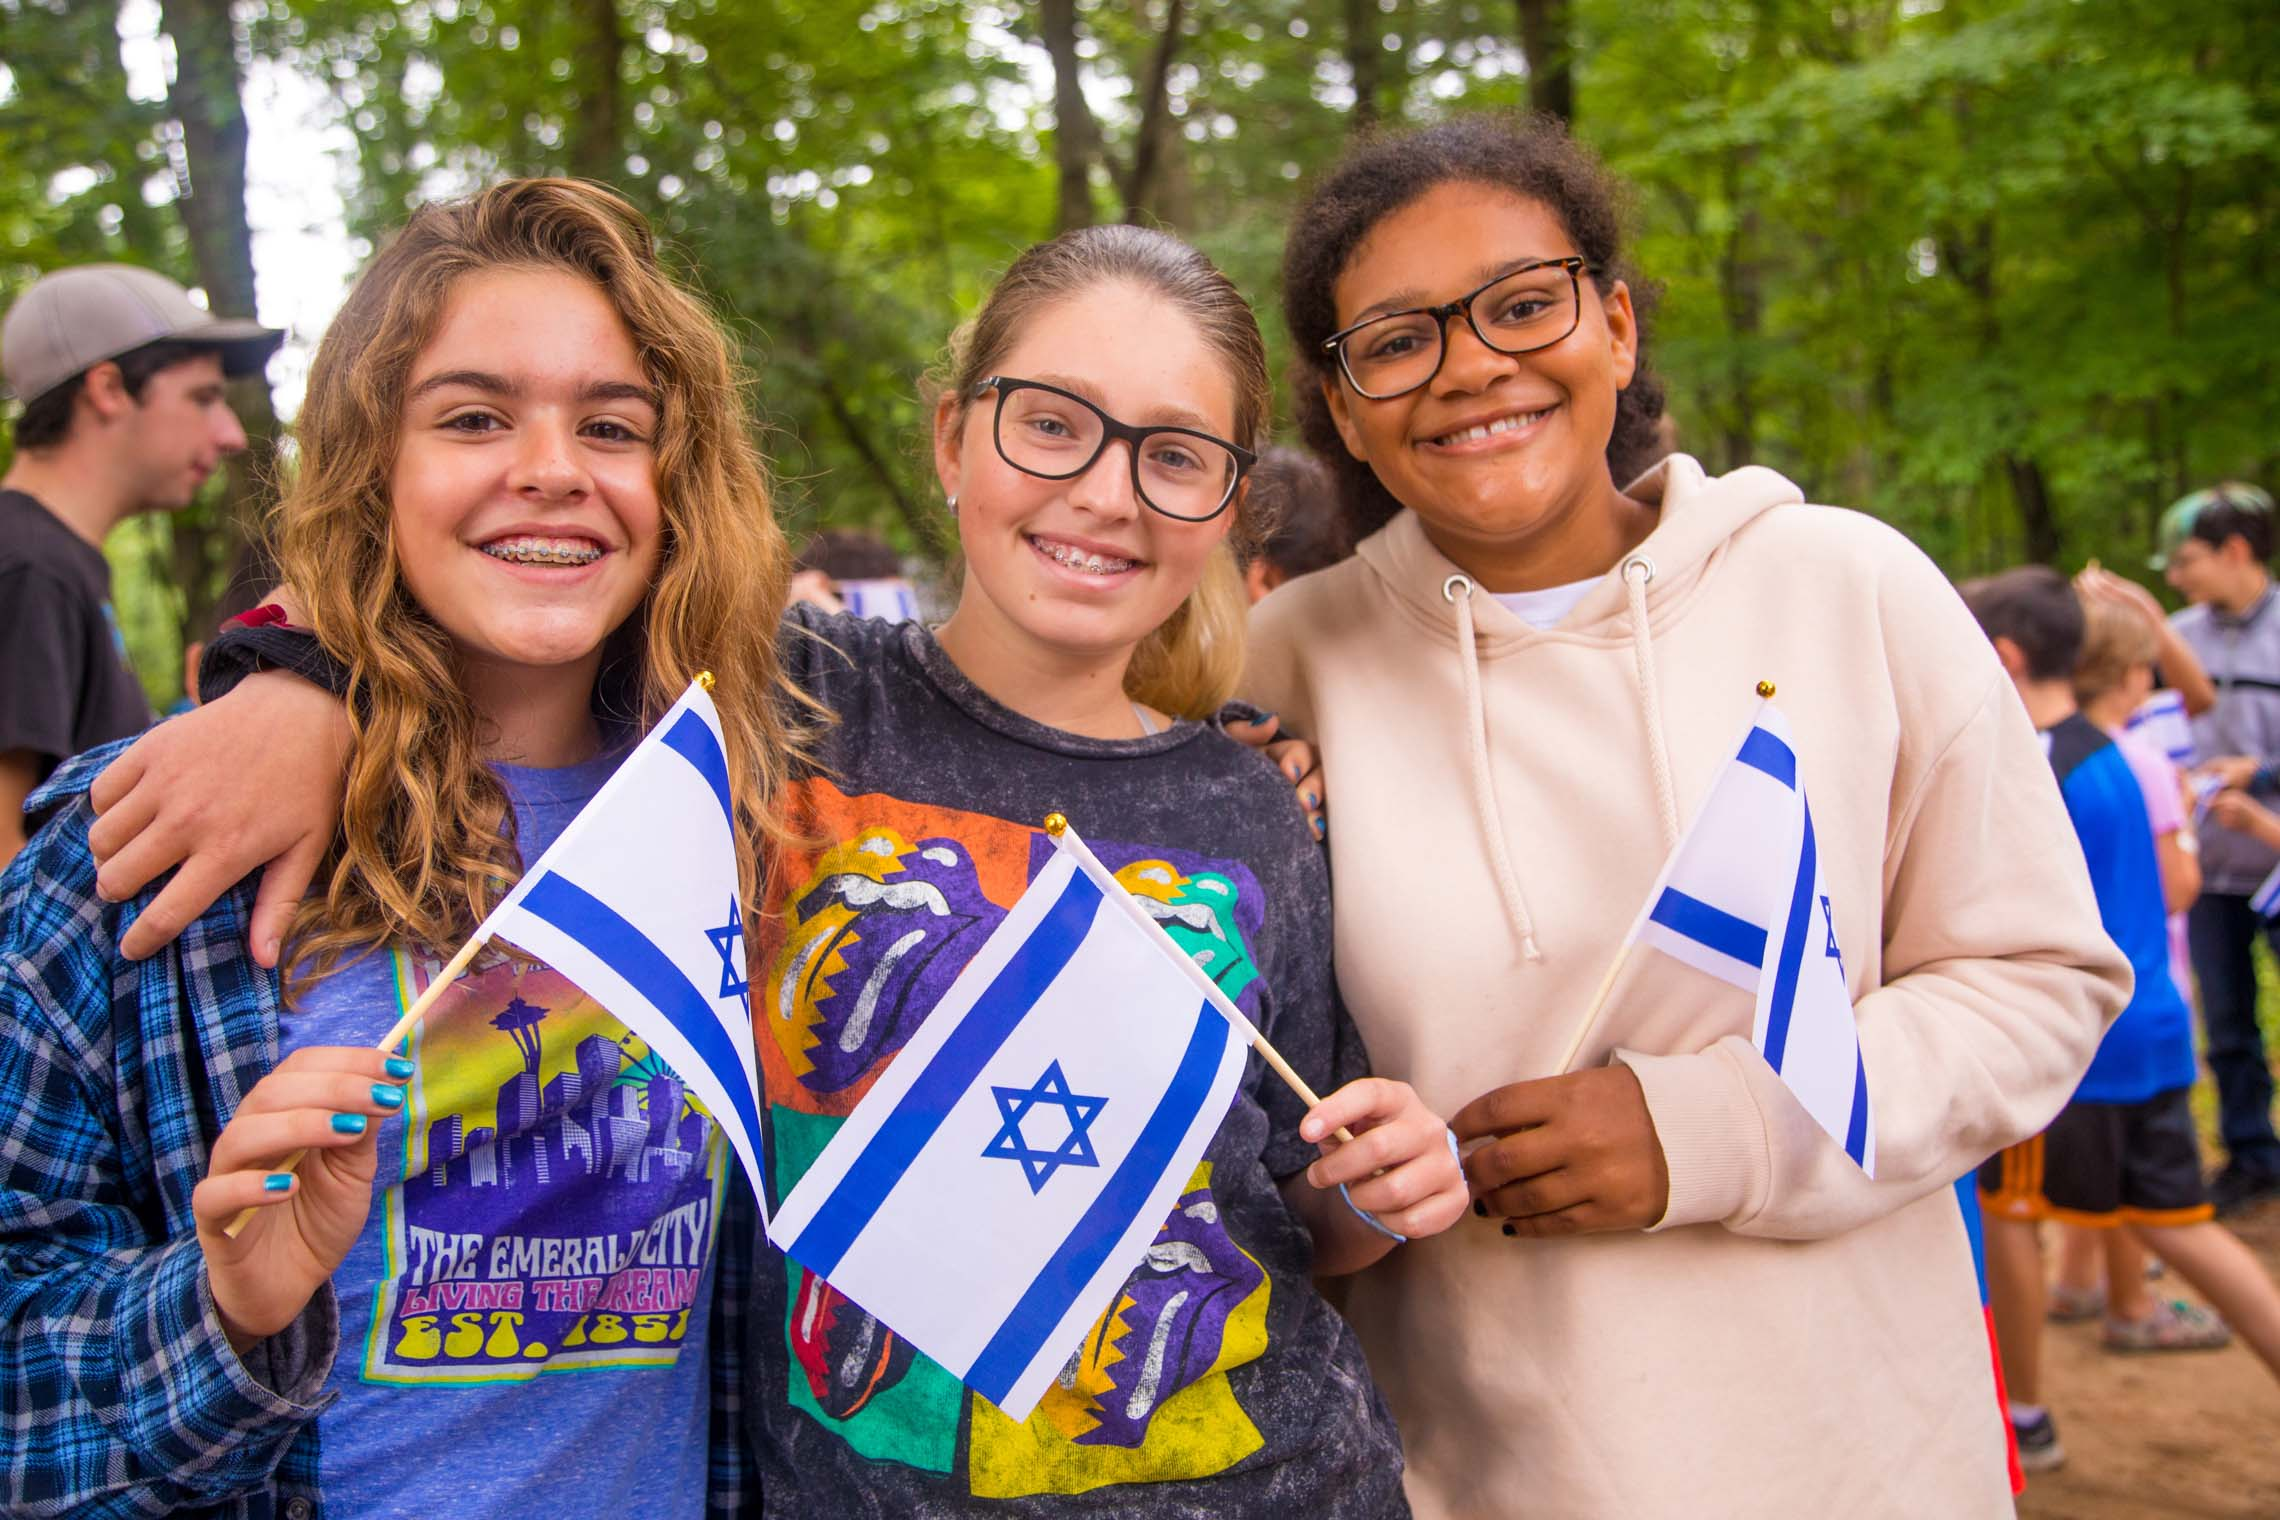 Three female campers holding Israeli flags